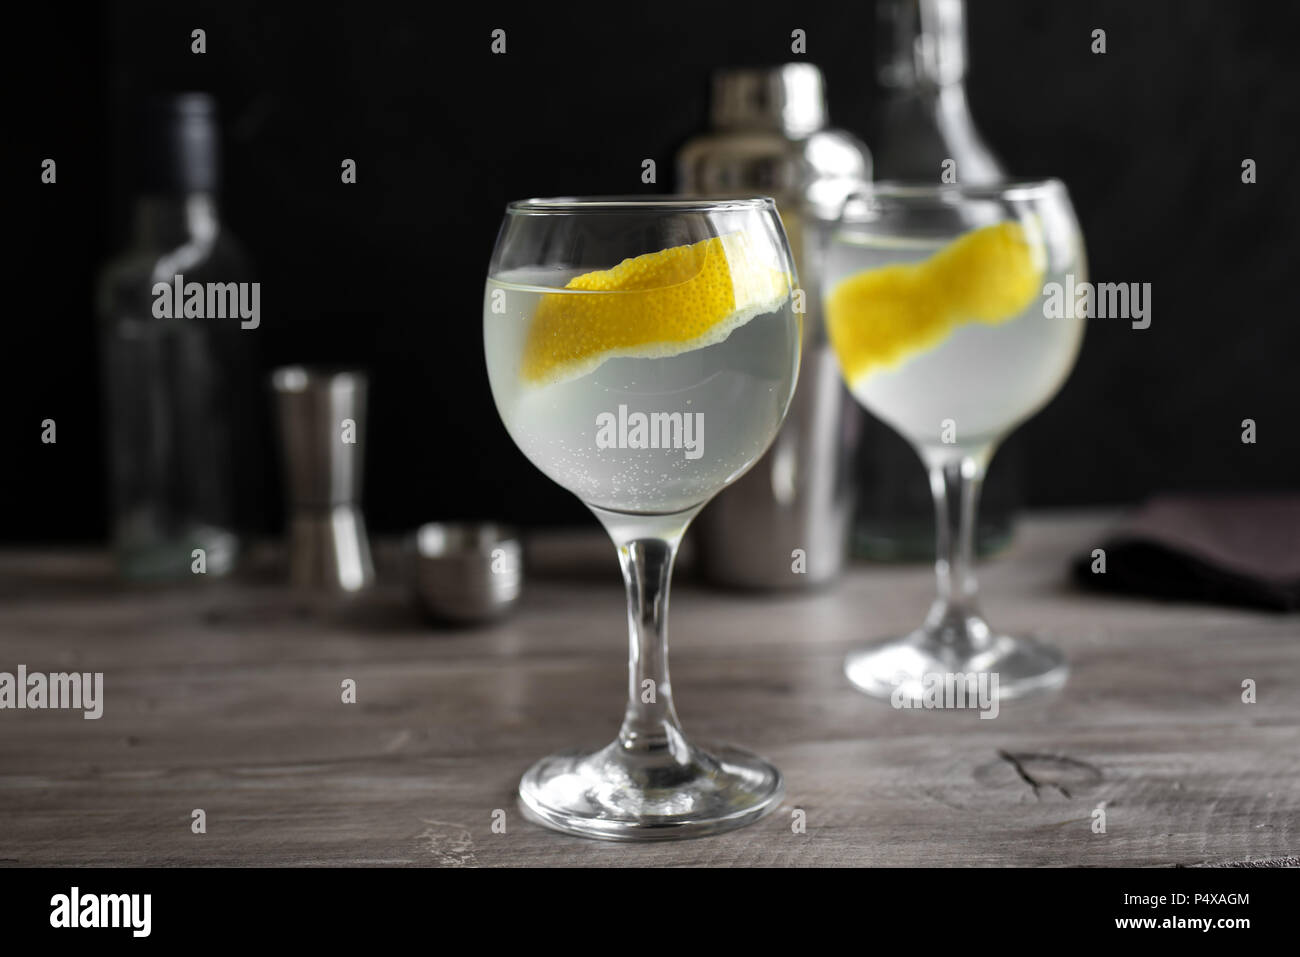 Gin fizz cocktail with lemon, cucumber, rosemary and ice. Gin tonic or gimlet on black background, copy space. - Stock Image